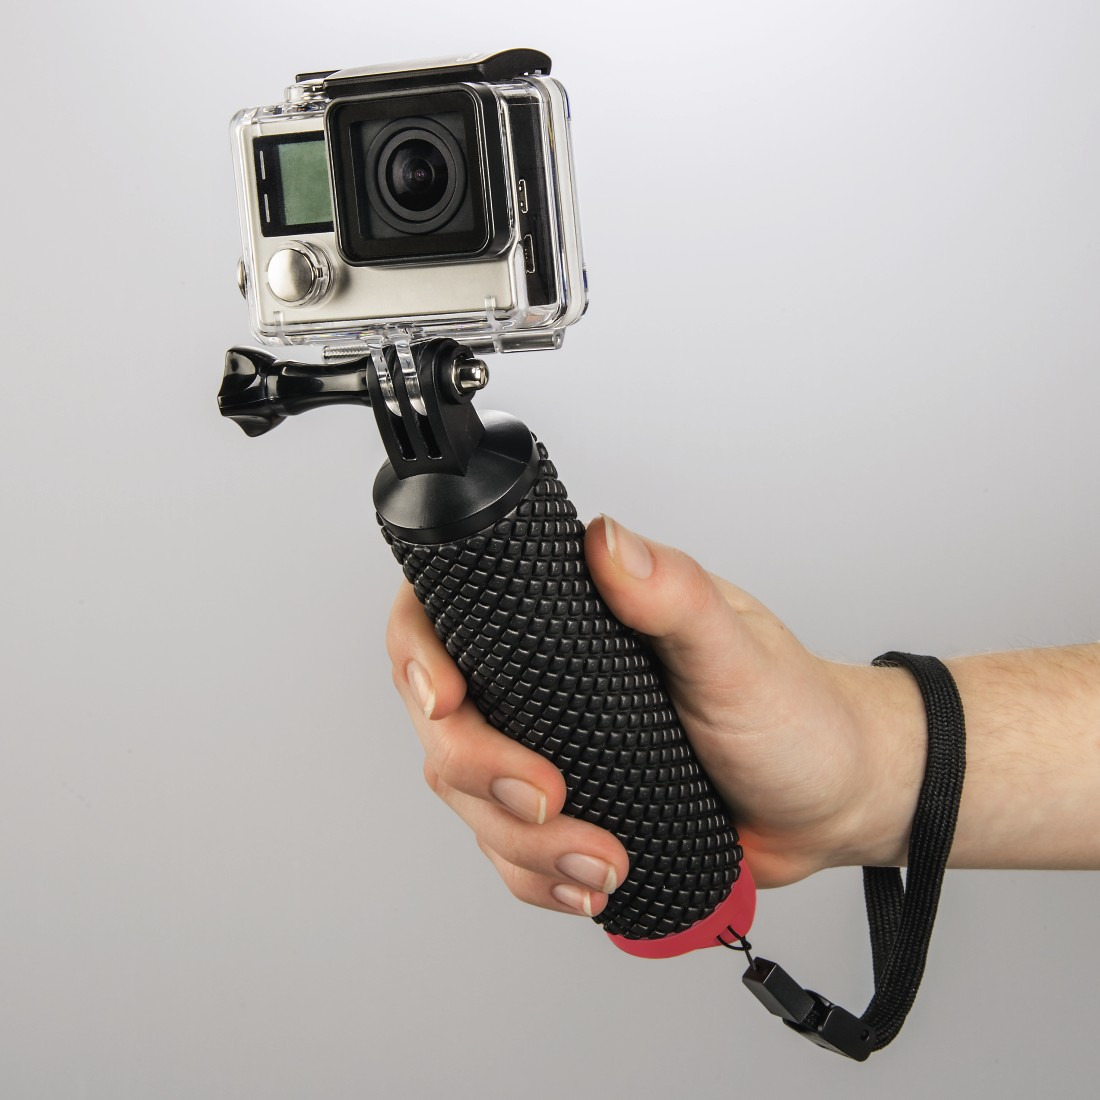 awx3 High-Res Appliance 3 - Hama, Maner plutitor 2in1 pentru GoPro